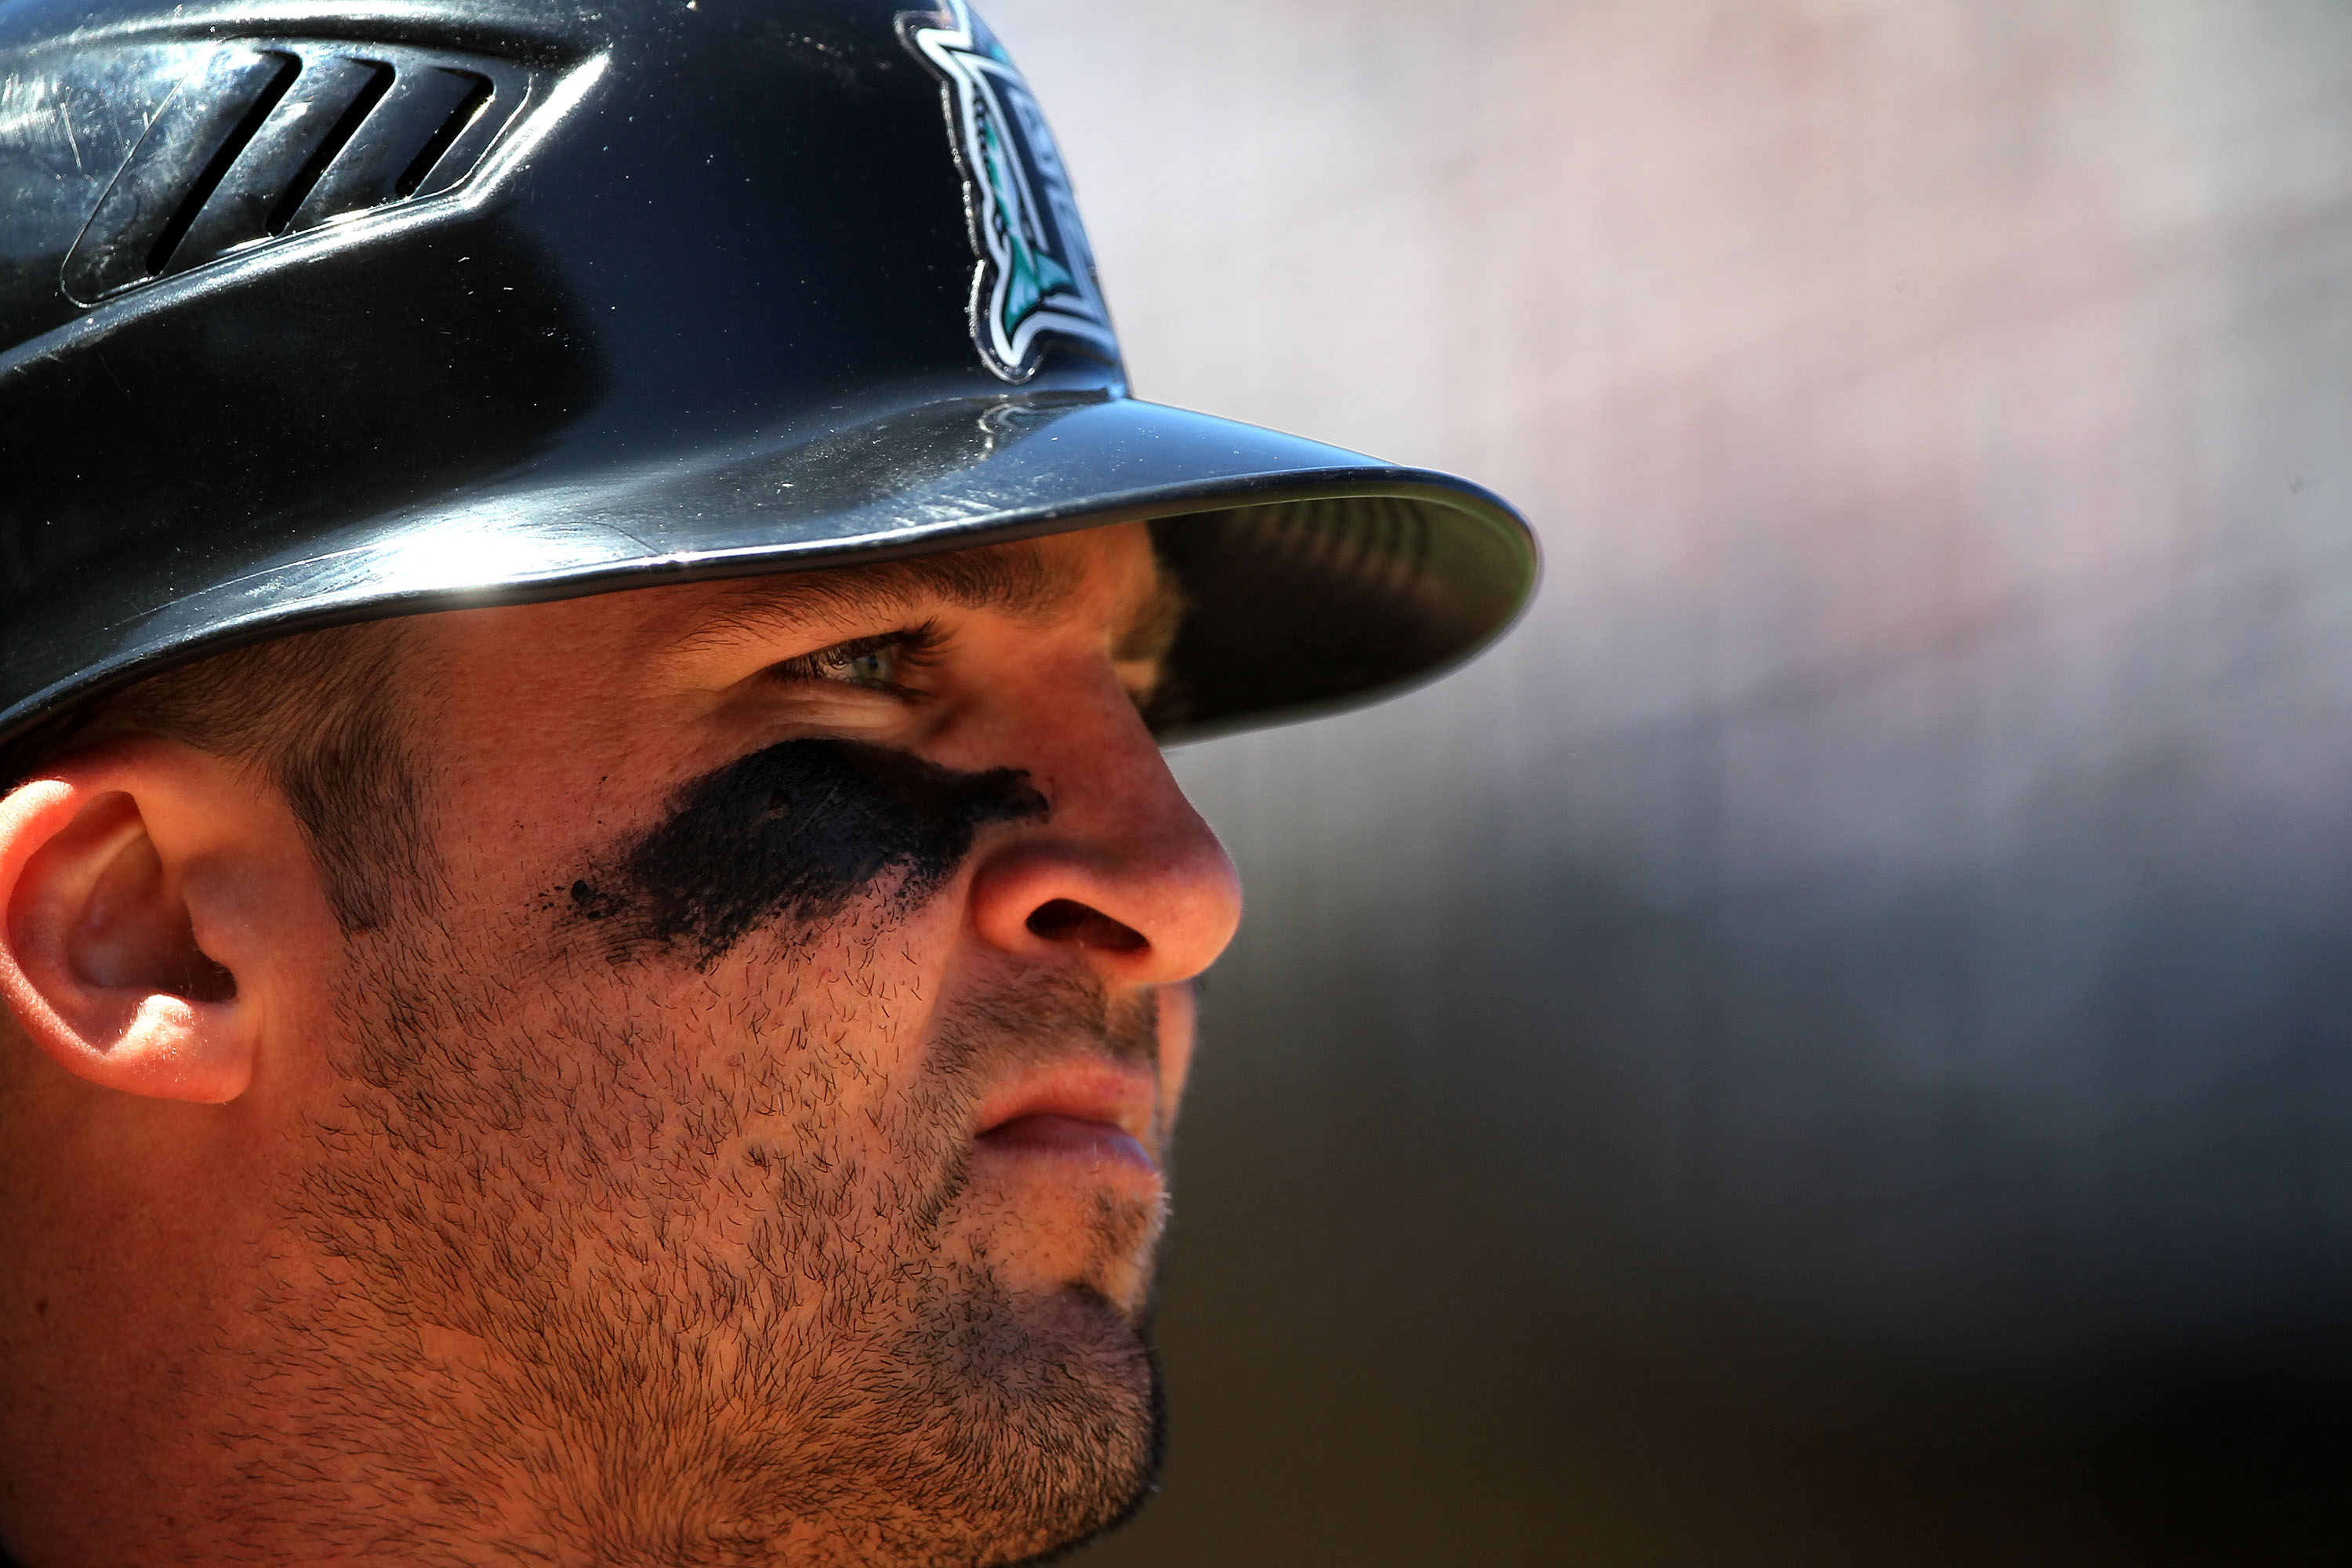 SAN FRANCISCO - JULY 29:  Dan Uggla #6 of the Florida Marlins looks on against the San Francisco Giants during an MLB game at AT&T Park on July 29, 2010 in San Francisco, California.  (Photo by Jed Jacobsohn/Getty Images)